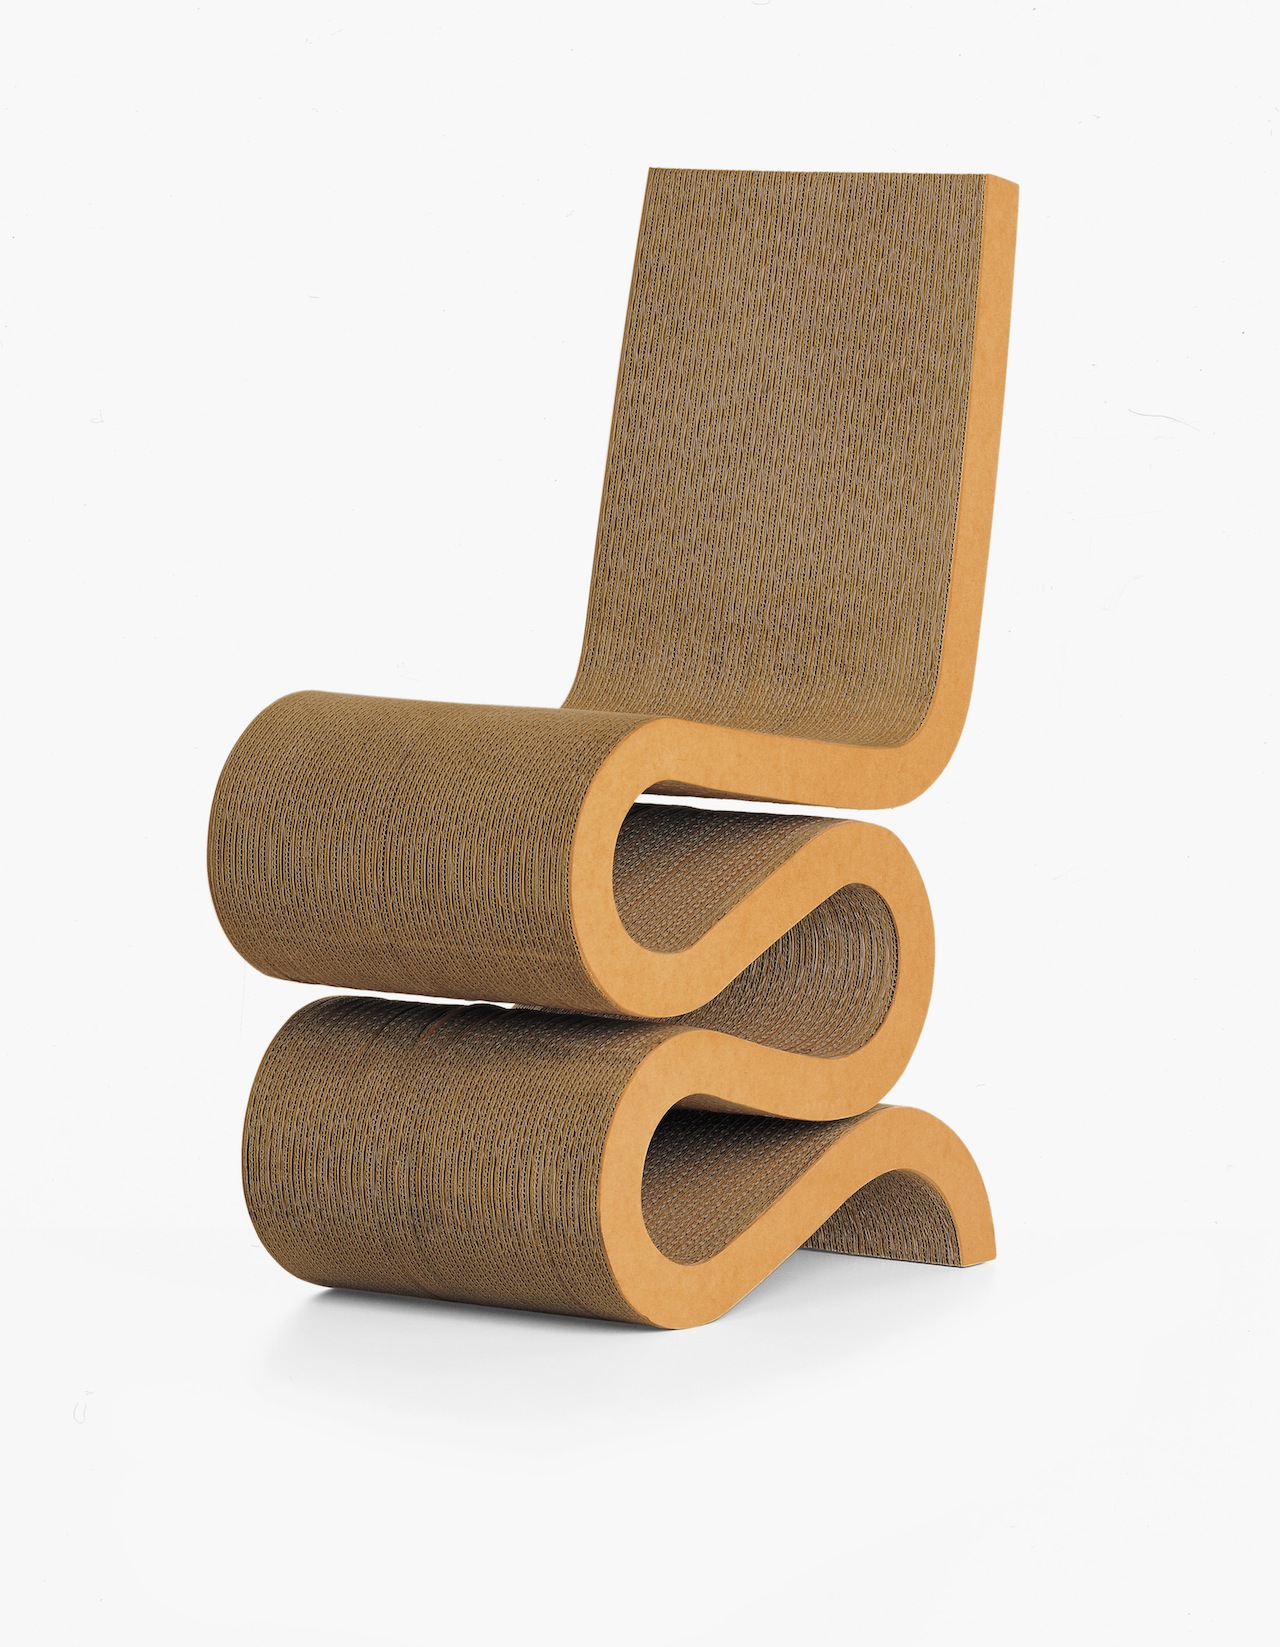 Wiggle Side Chair, Designed 1972/2005. Designed by Frank O. Gehry, American (born Canada), 1929. Corrugated cardboard, hardboard, 34 1/4 × 14 1/4 × 24 inches (87 × 36.2 × 61 cm)Height of seat: 17 inches (43.2 cm), (Photo by Hans Hansen, courtesy of Vitra, Inc.)